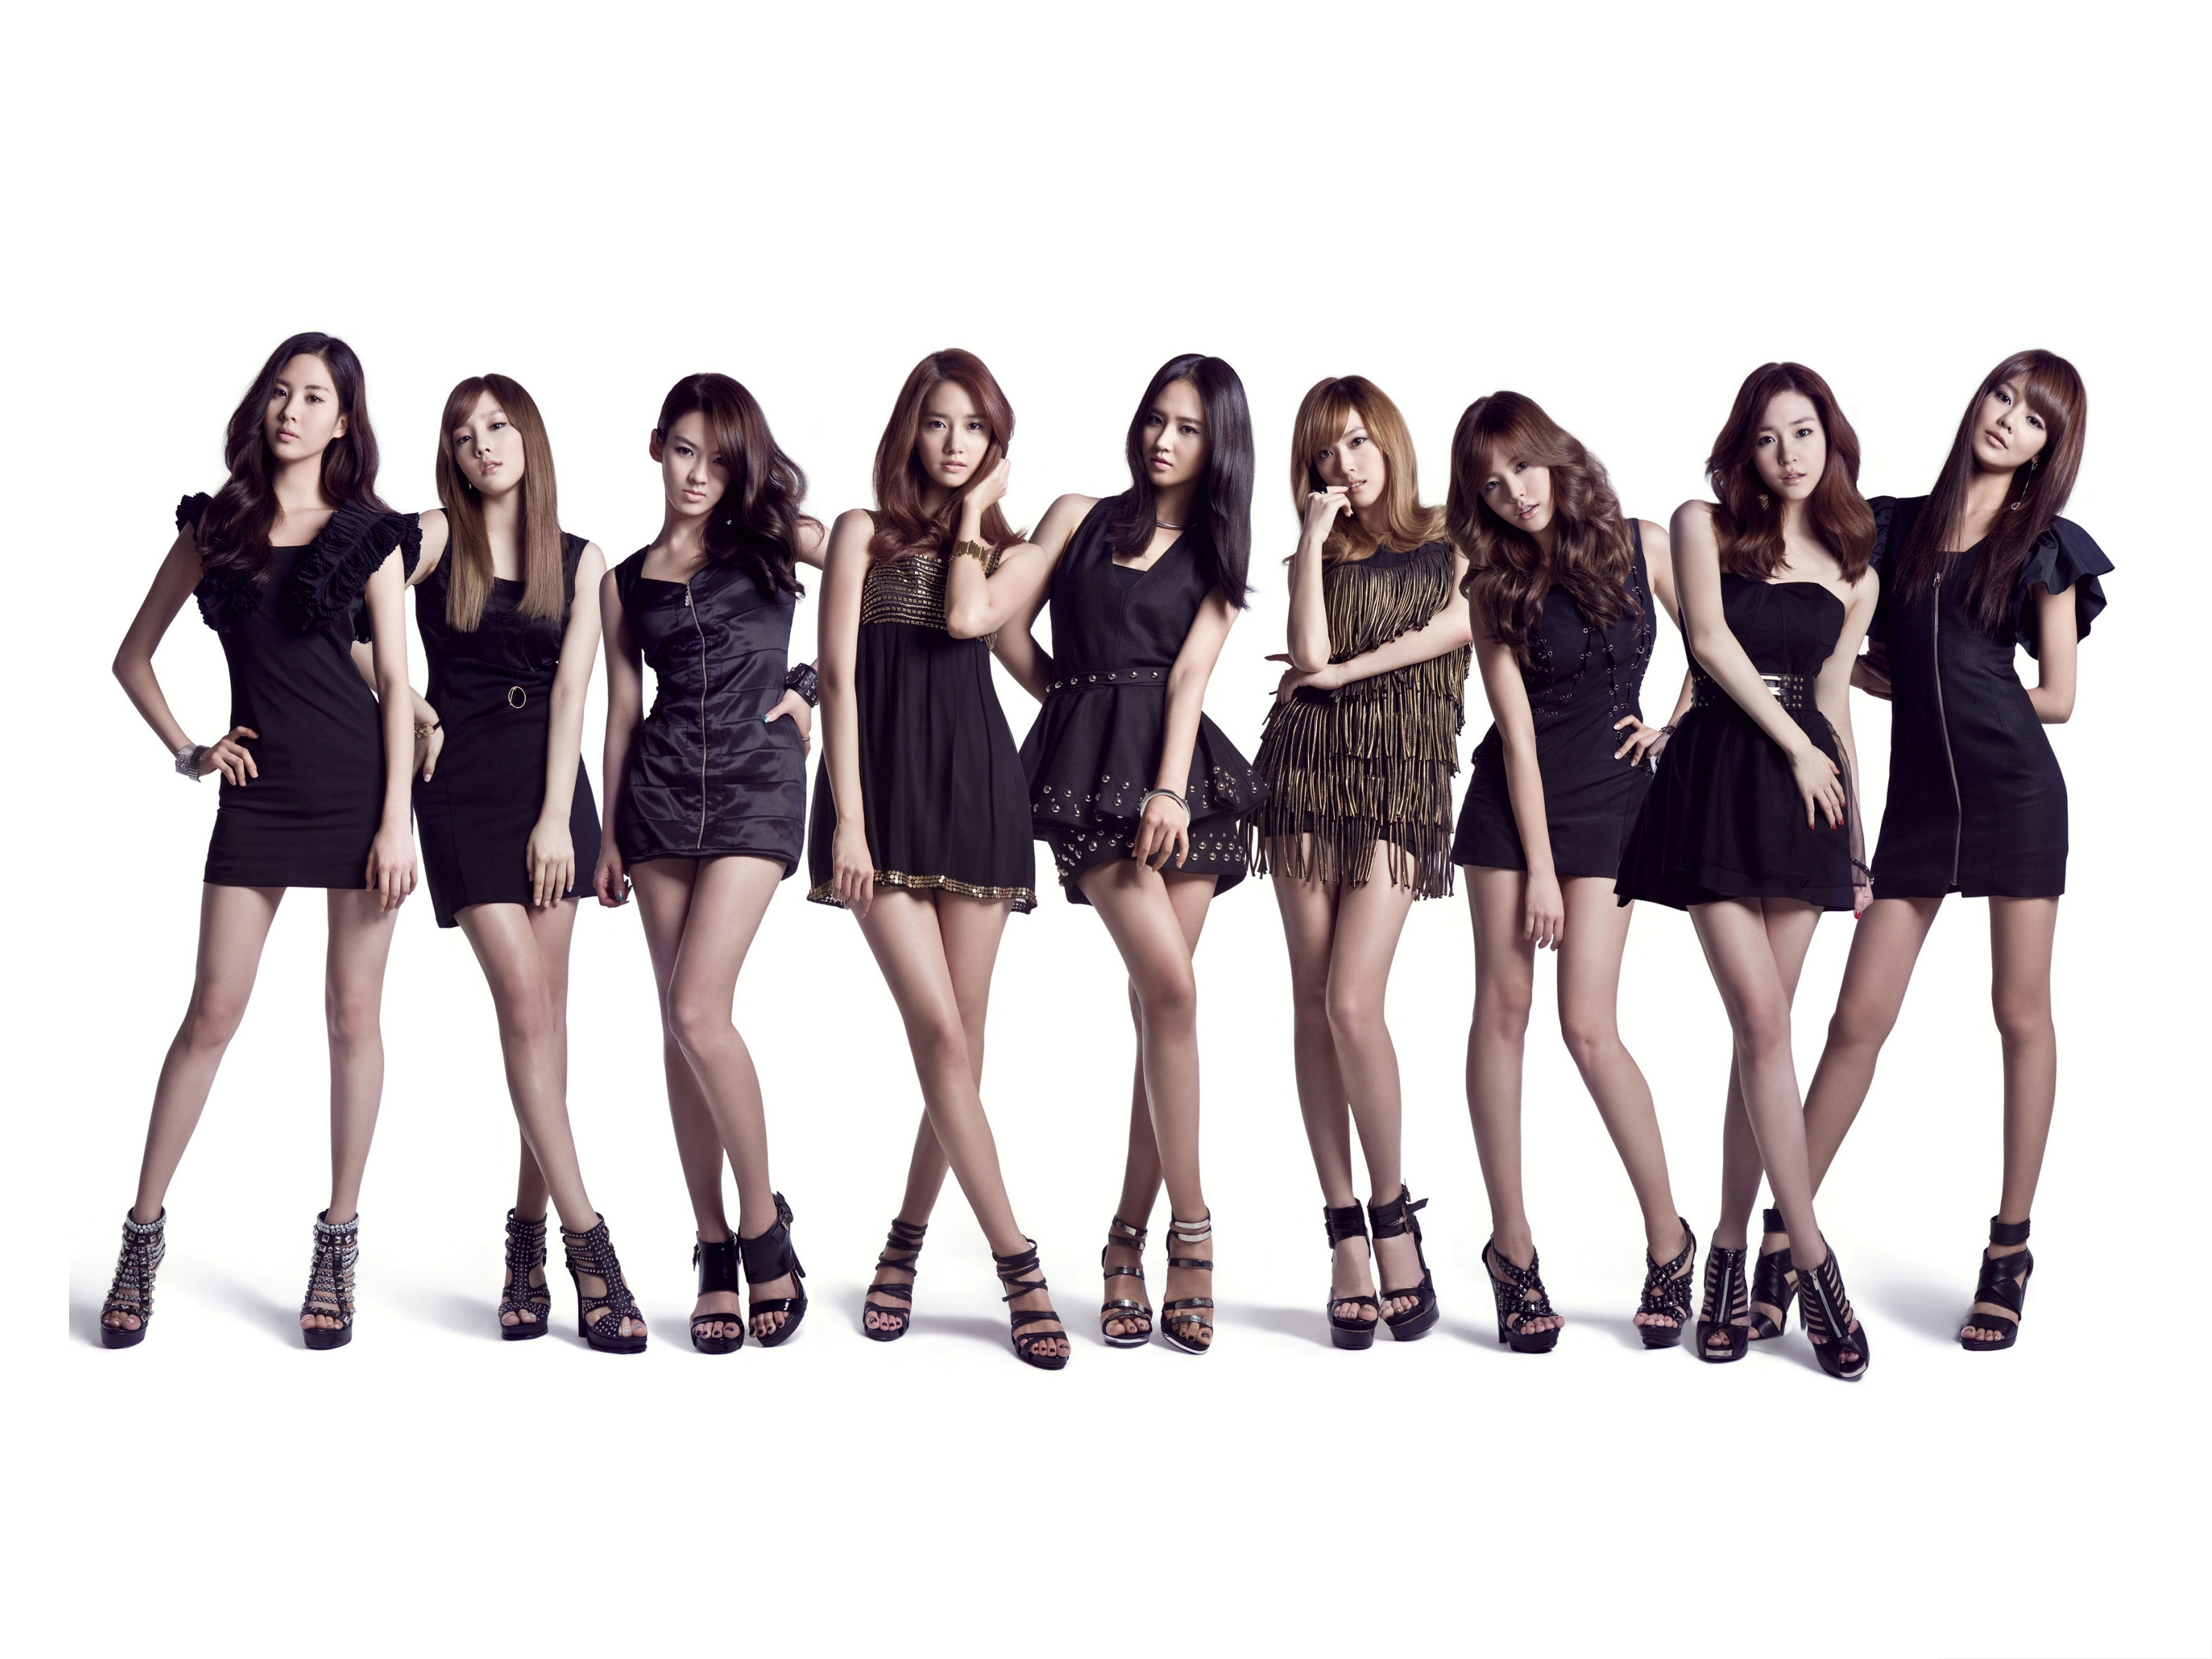 click to free download the wallpaper--Girls Generation Poster, Tall and Appealing Teammates, Well-Liked Group 3200X2400 free wallpaper download